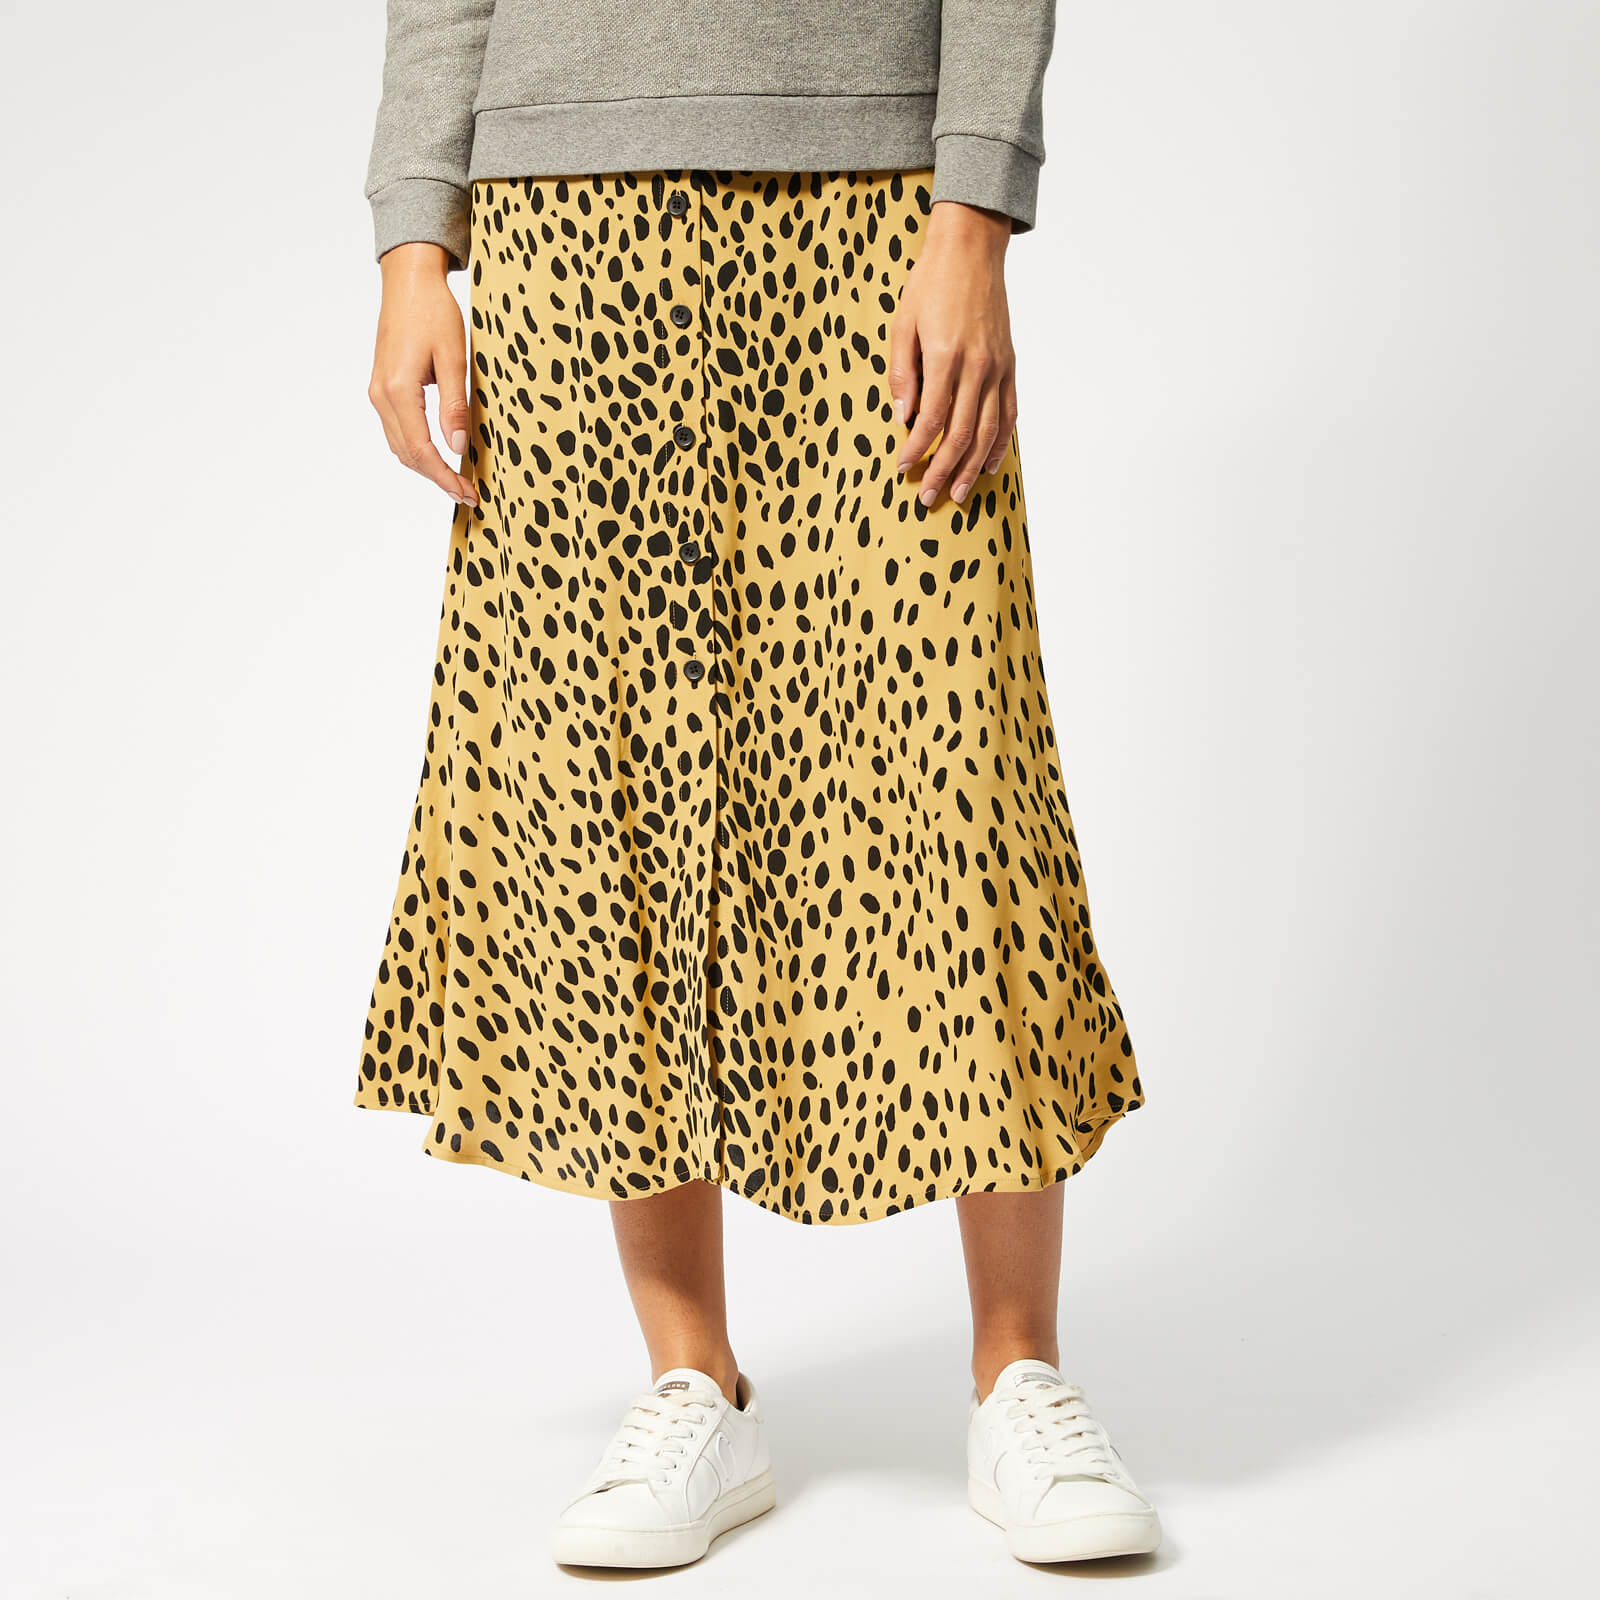 cb96bc3337a6 Whistles Women's Animal Print Midi Skirt - Cream/Multi Womens Clothing |  TheHut.com